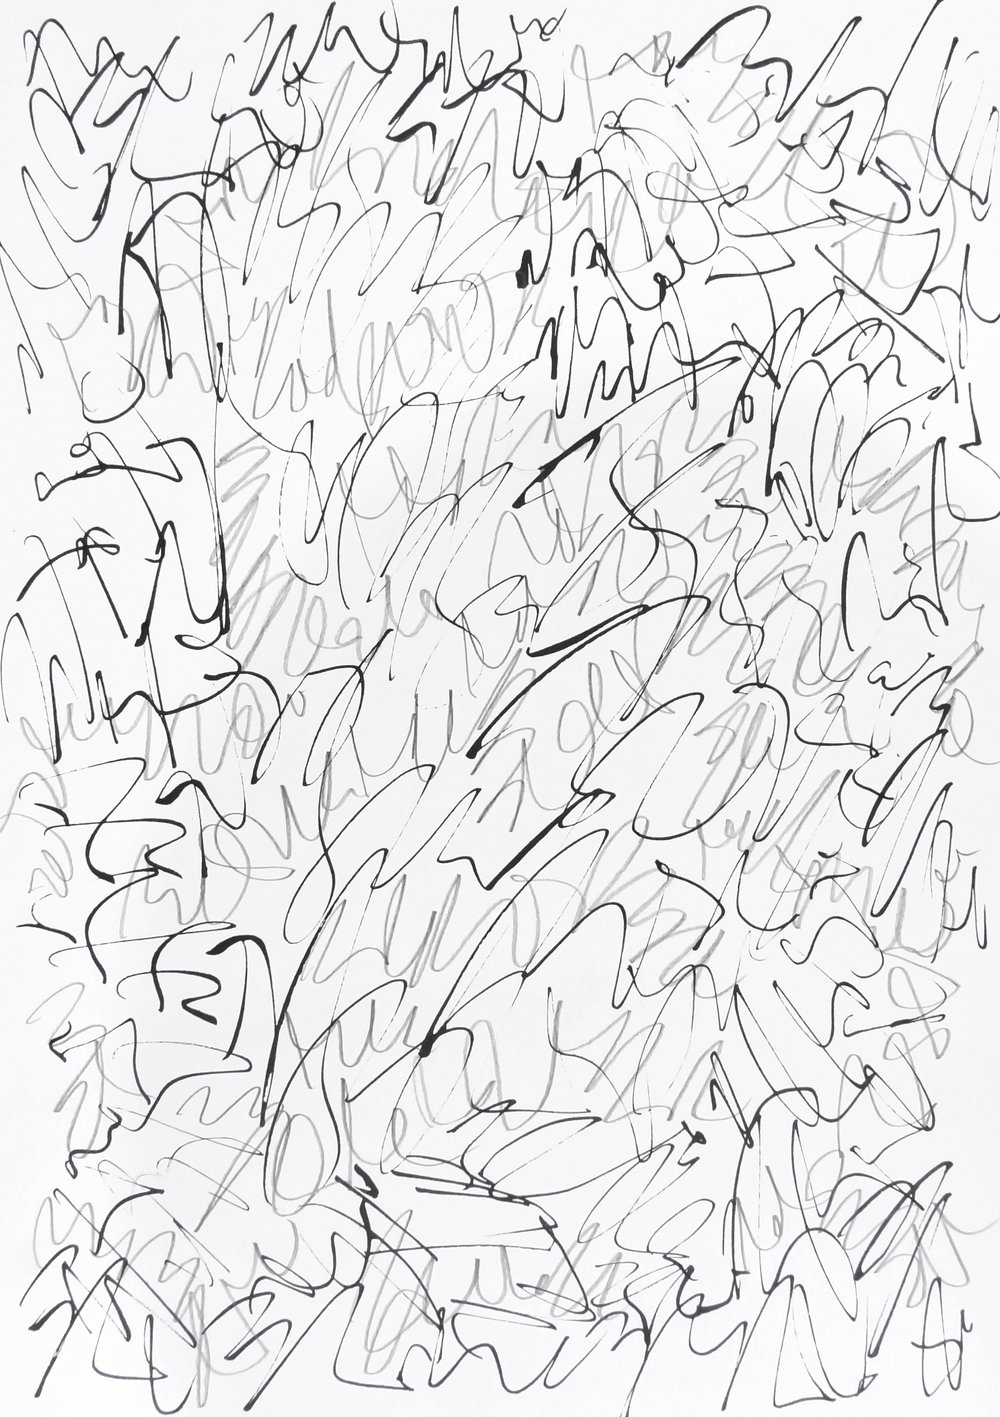 rhythm and flow studies, 2019 calligraphy ink and pencil on paper 42,0 x 29,7 cm (5-19)